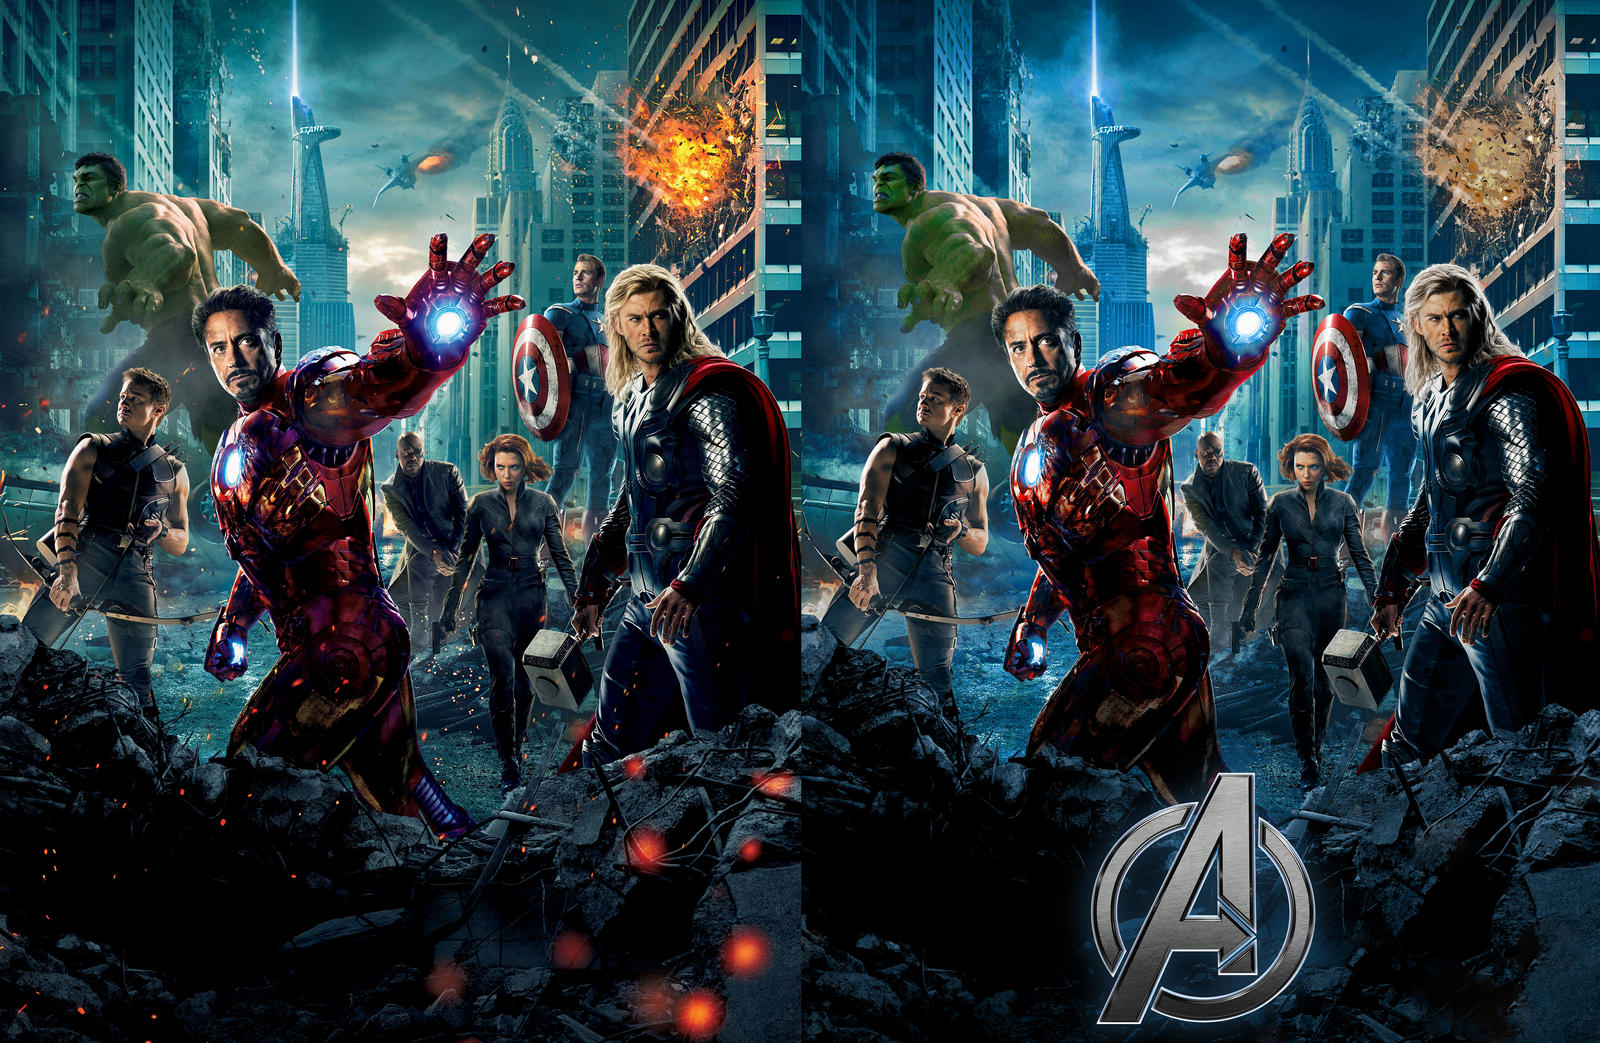 ''The Avengers'' poster recreated comparison by AndrewSS7